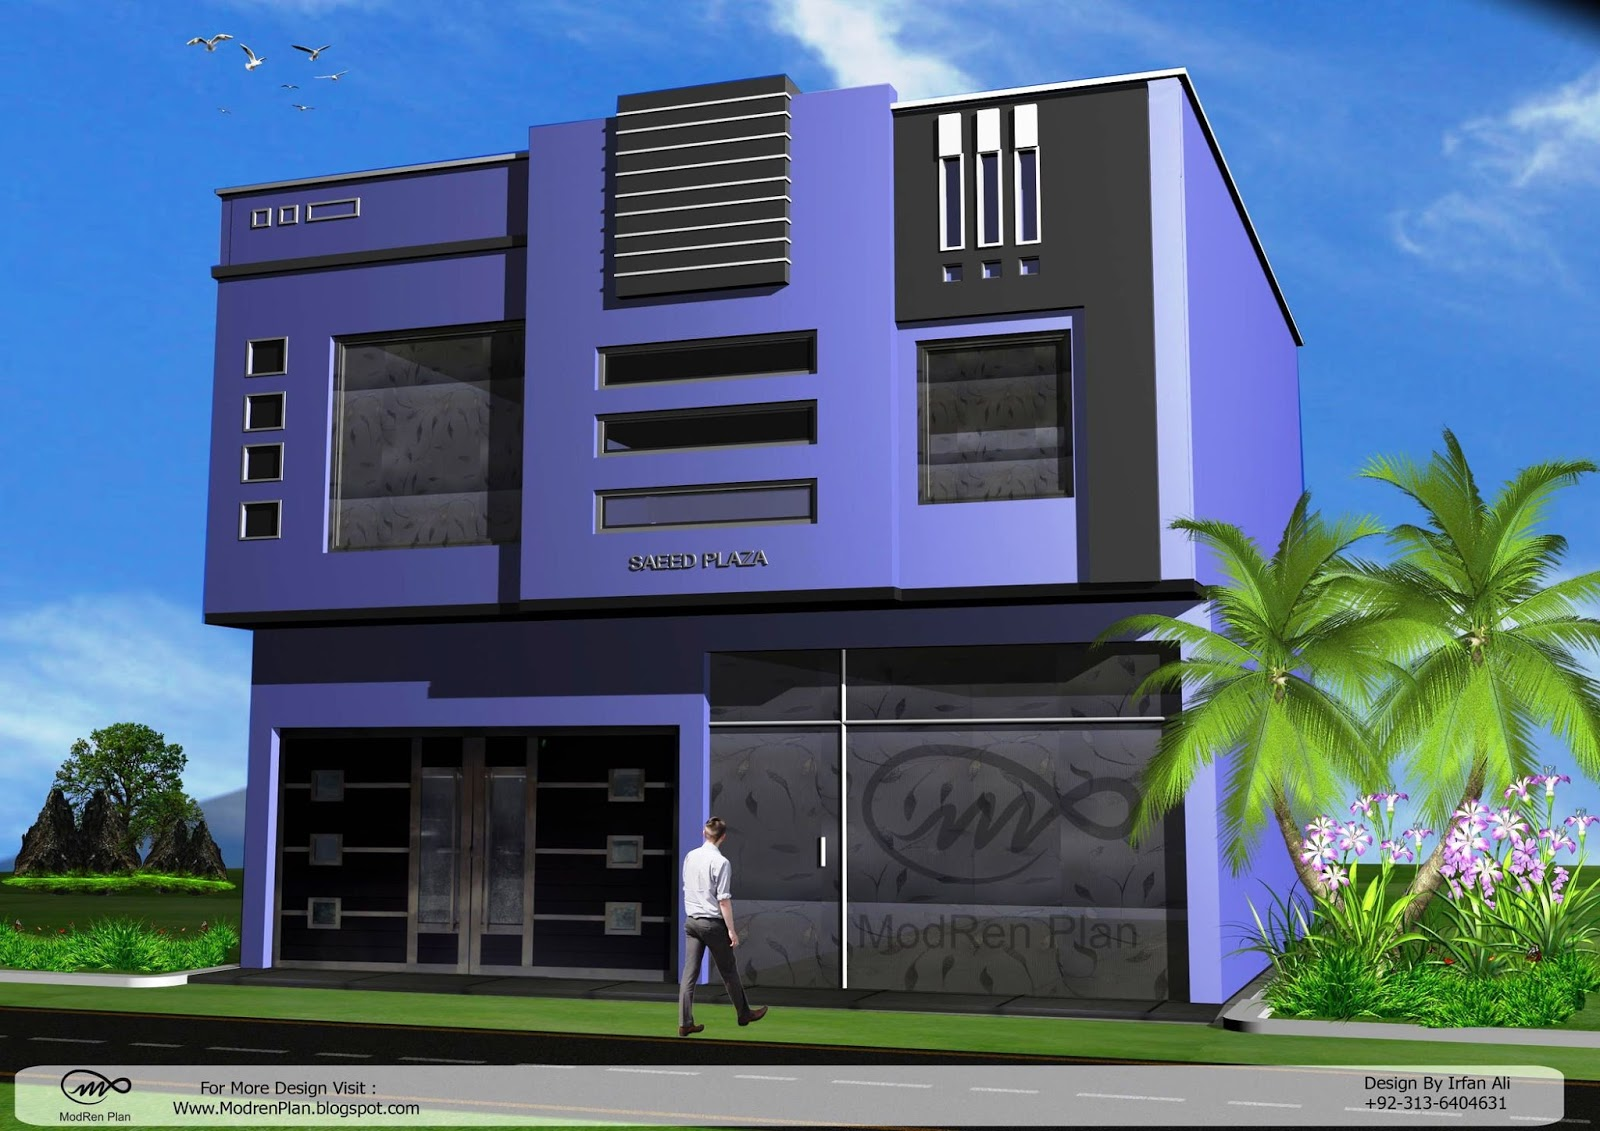 Modern commercial building designs and plaza front elevation for Modern industrial building design